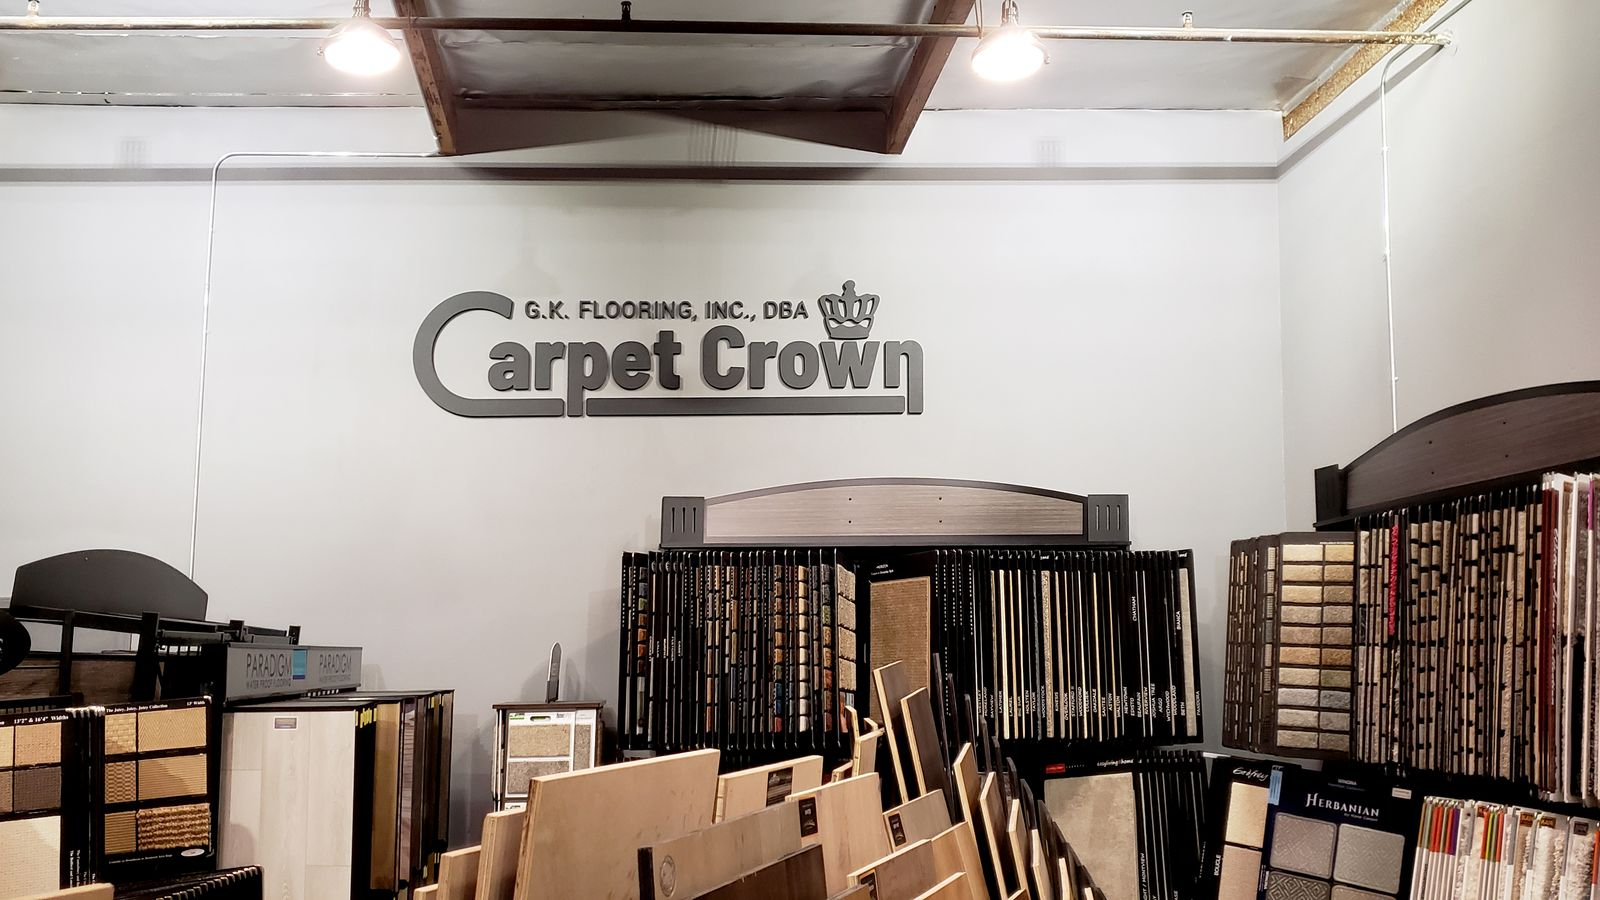 Carpet Crown 3d plastic letters and logo sign made of PVC for a carpet store interior branding